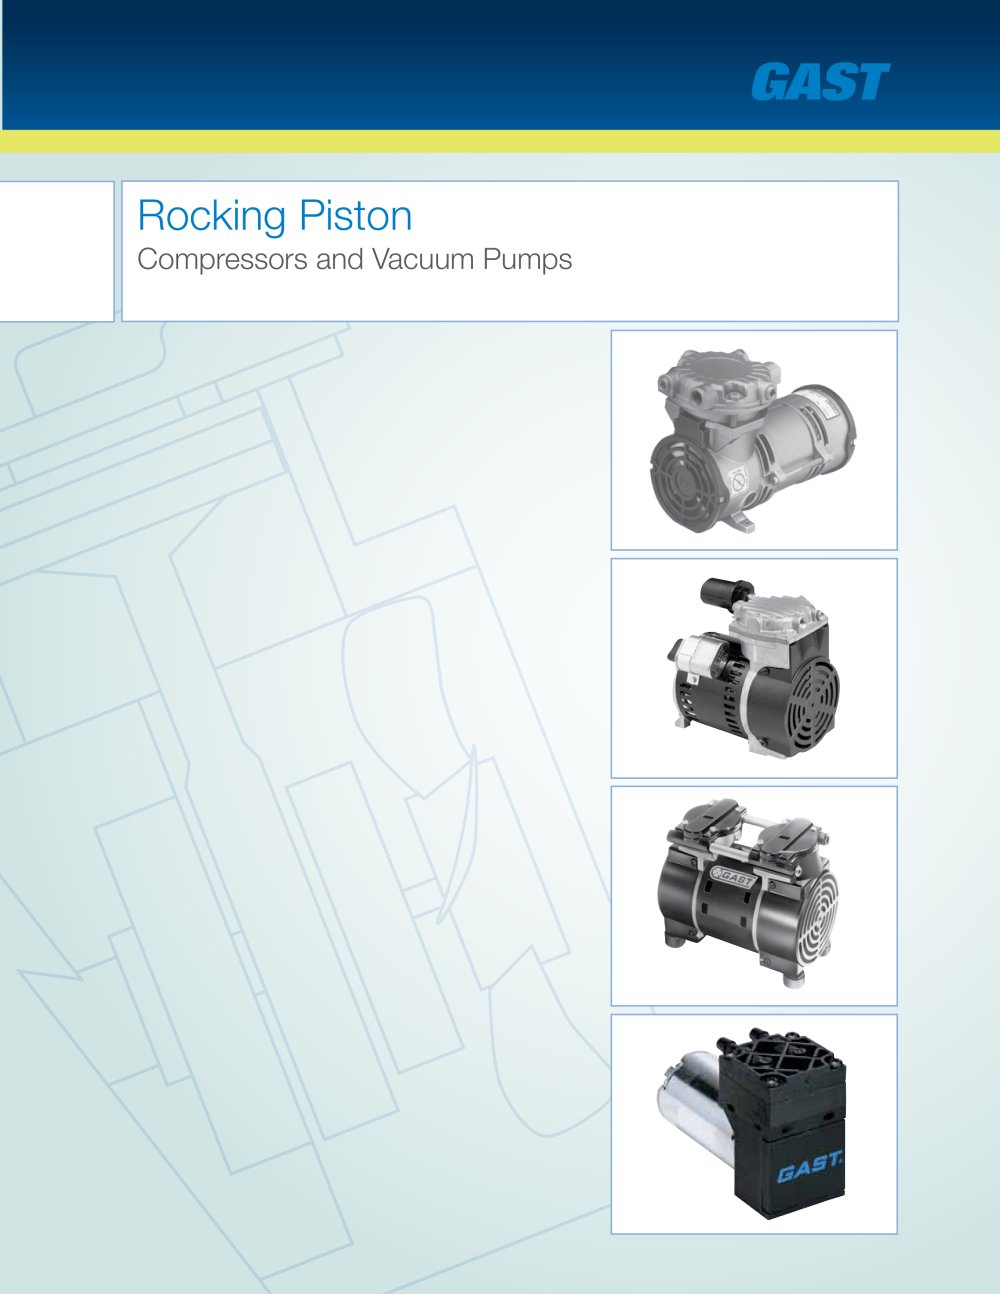 Rocking Piston Compressors And Vacuum Pumps Gast Pdf Catalogue 86r Compressor Wiring Diagram 1 28 Pages